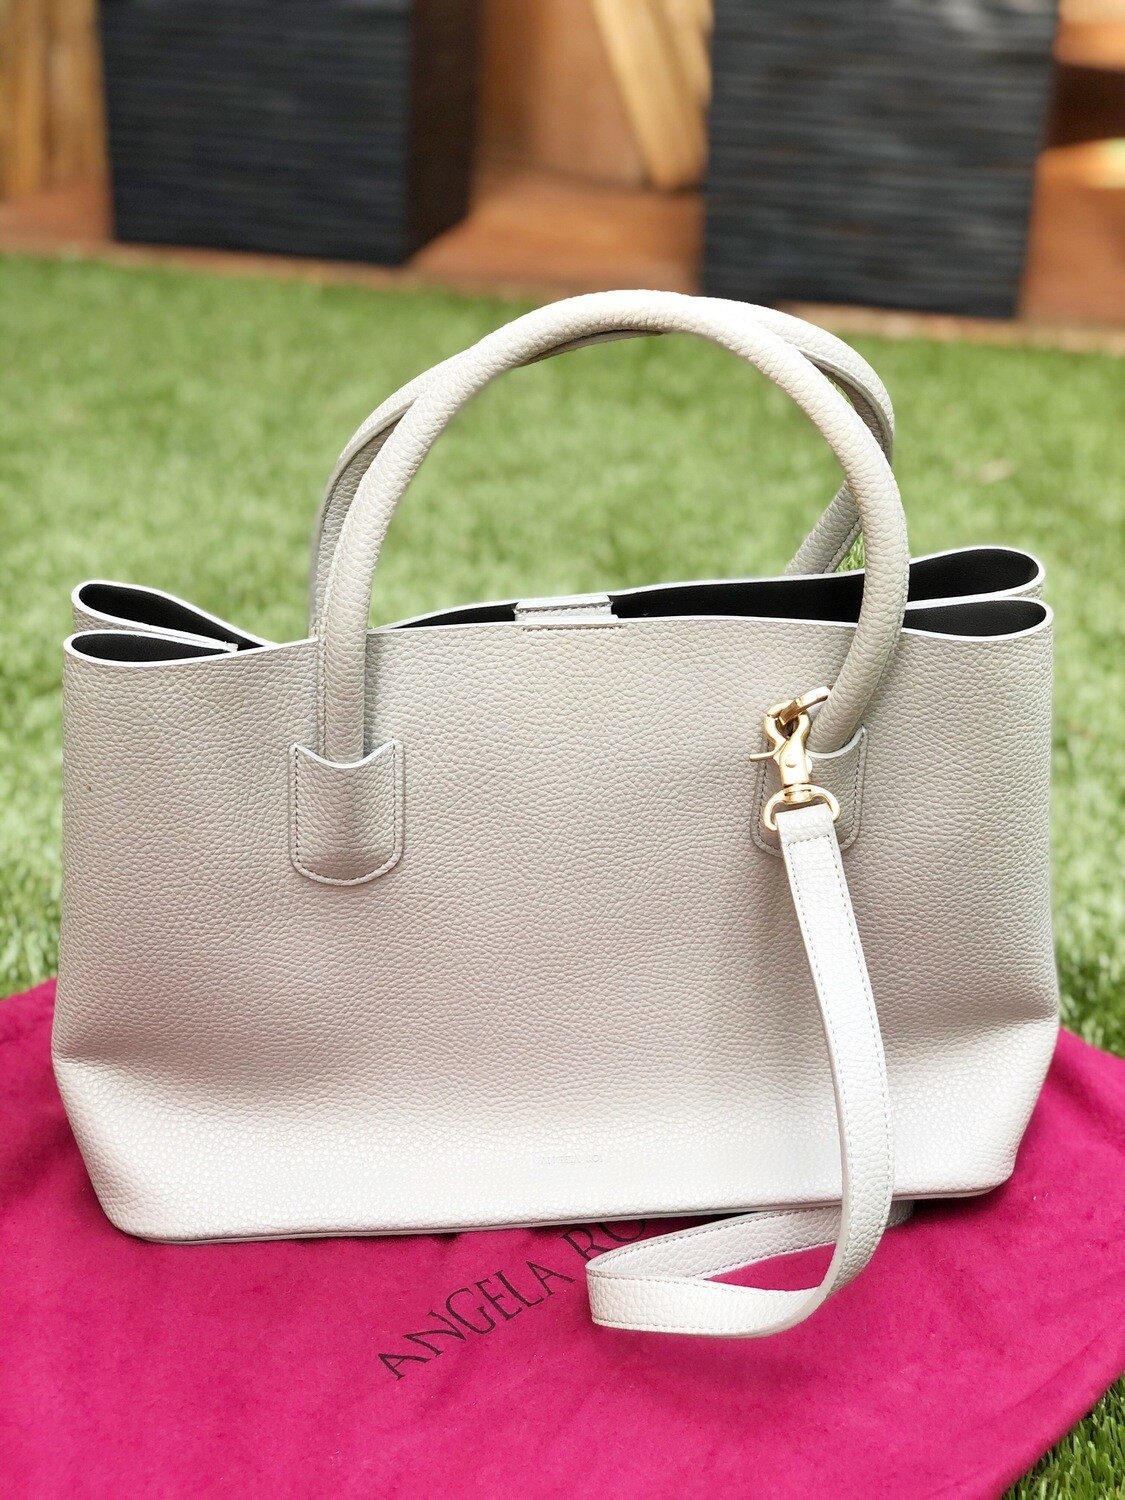 Angela Roi Cher Tote Light Gray